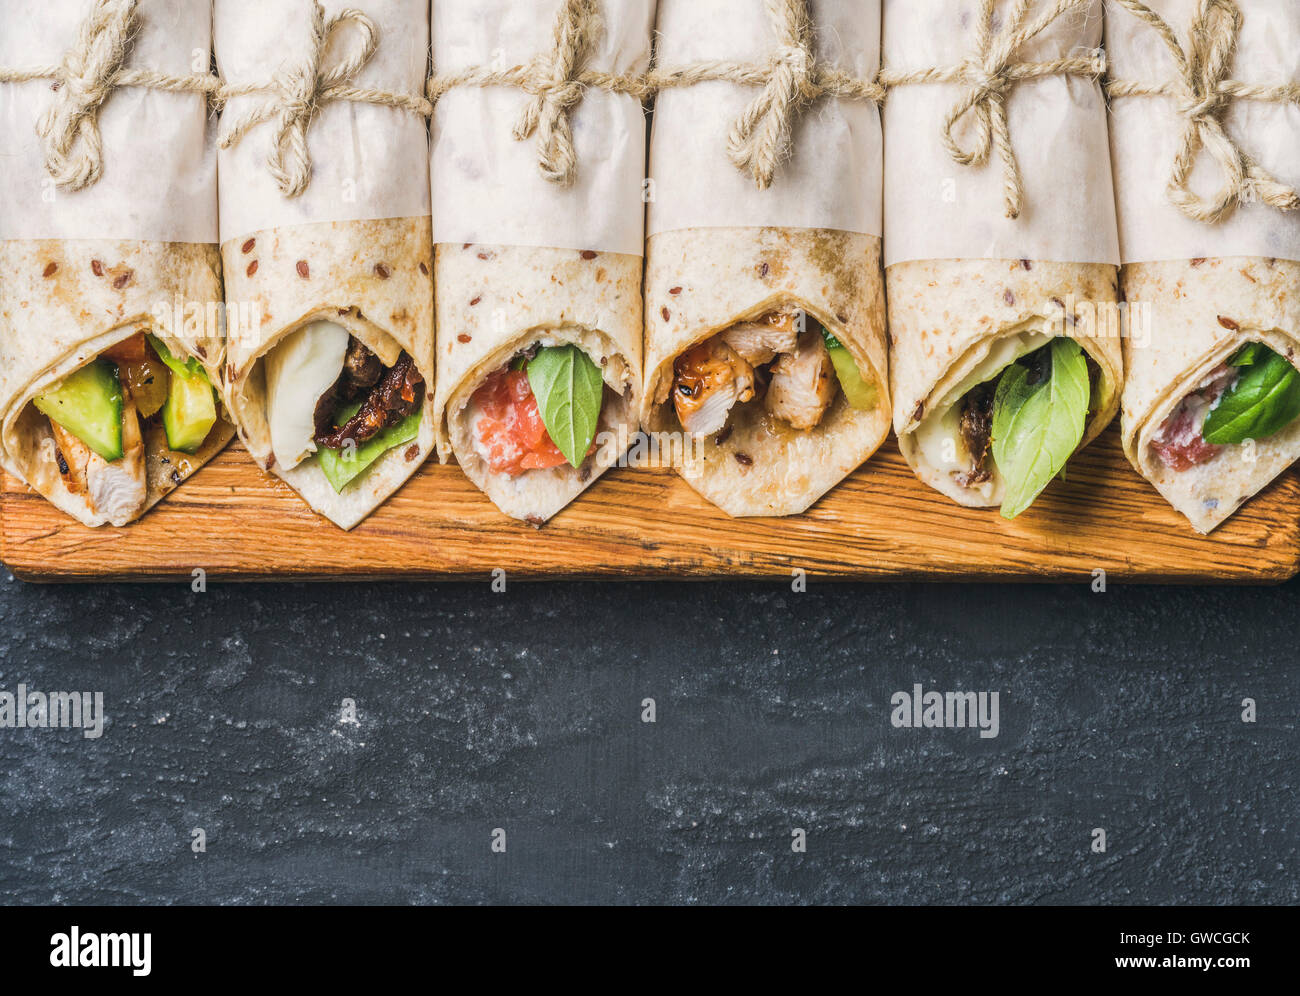 Tortilla wraps with various fillings on wooden board over dark grey grunge concrete background, top view, copy space, - Stock Image